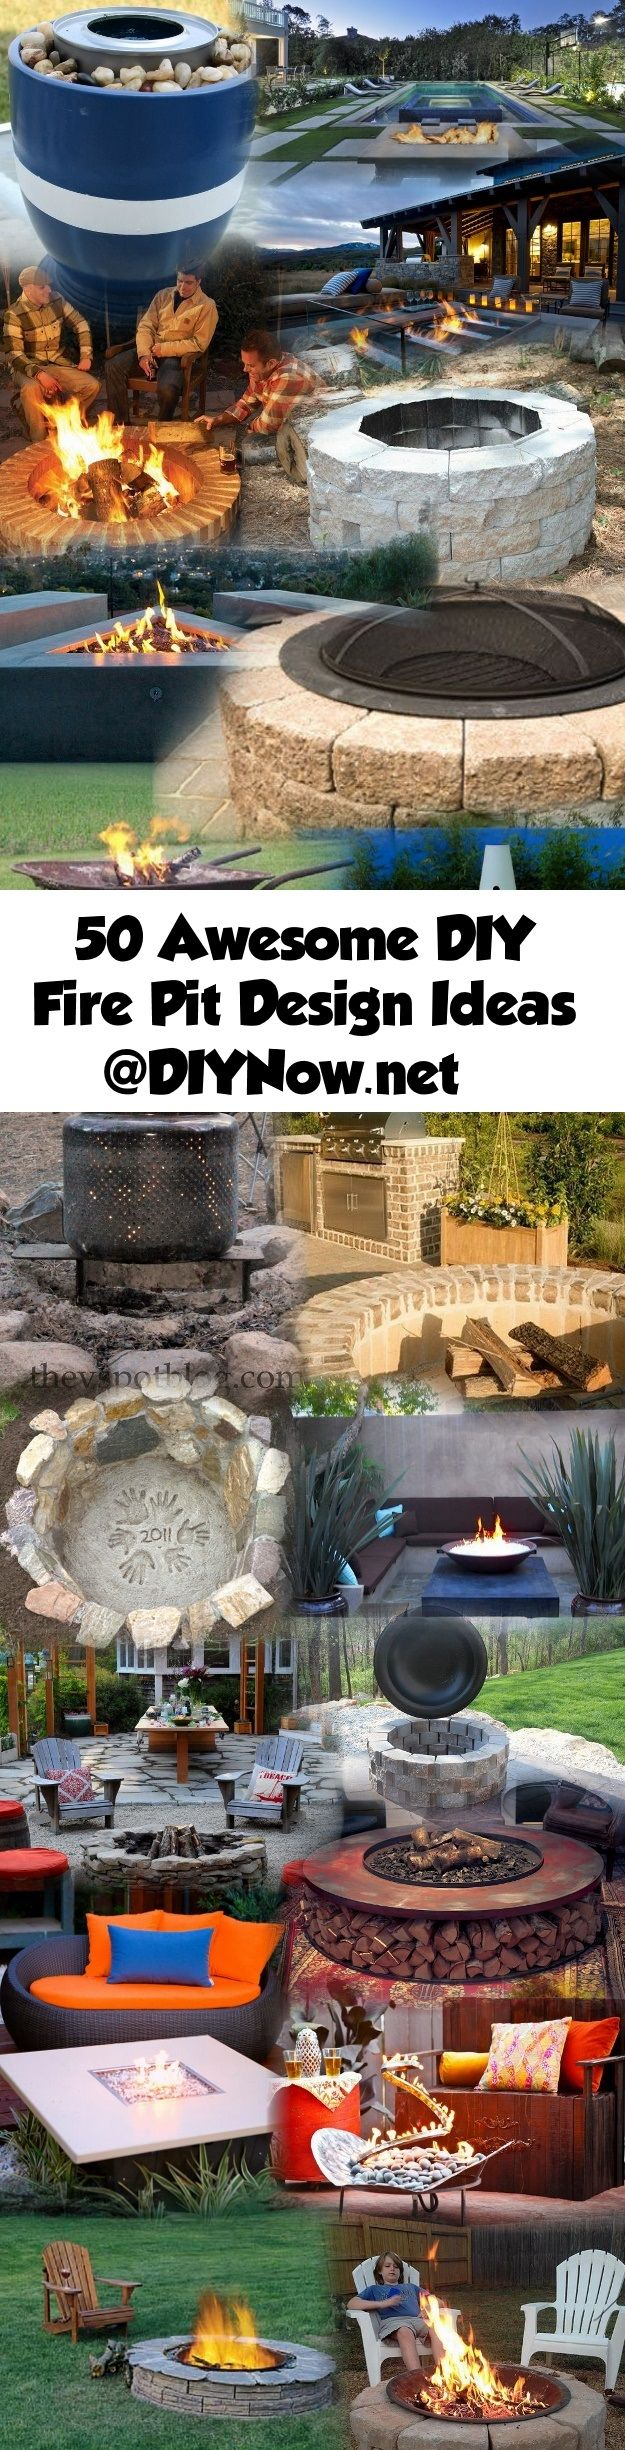 50 Awesome DIY Fire Pit Design Ideas